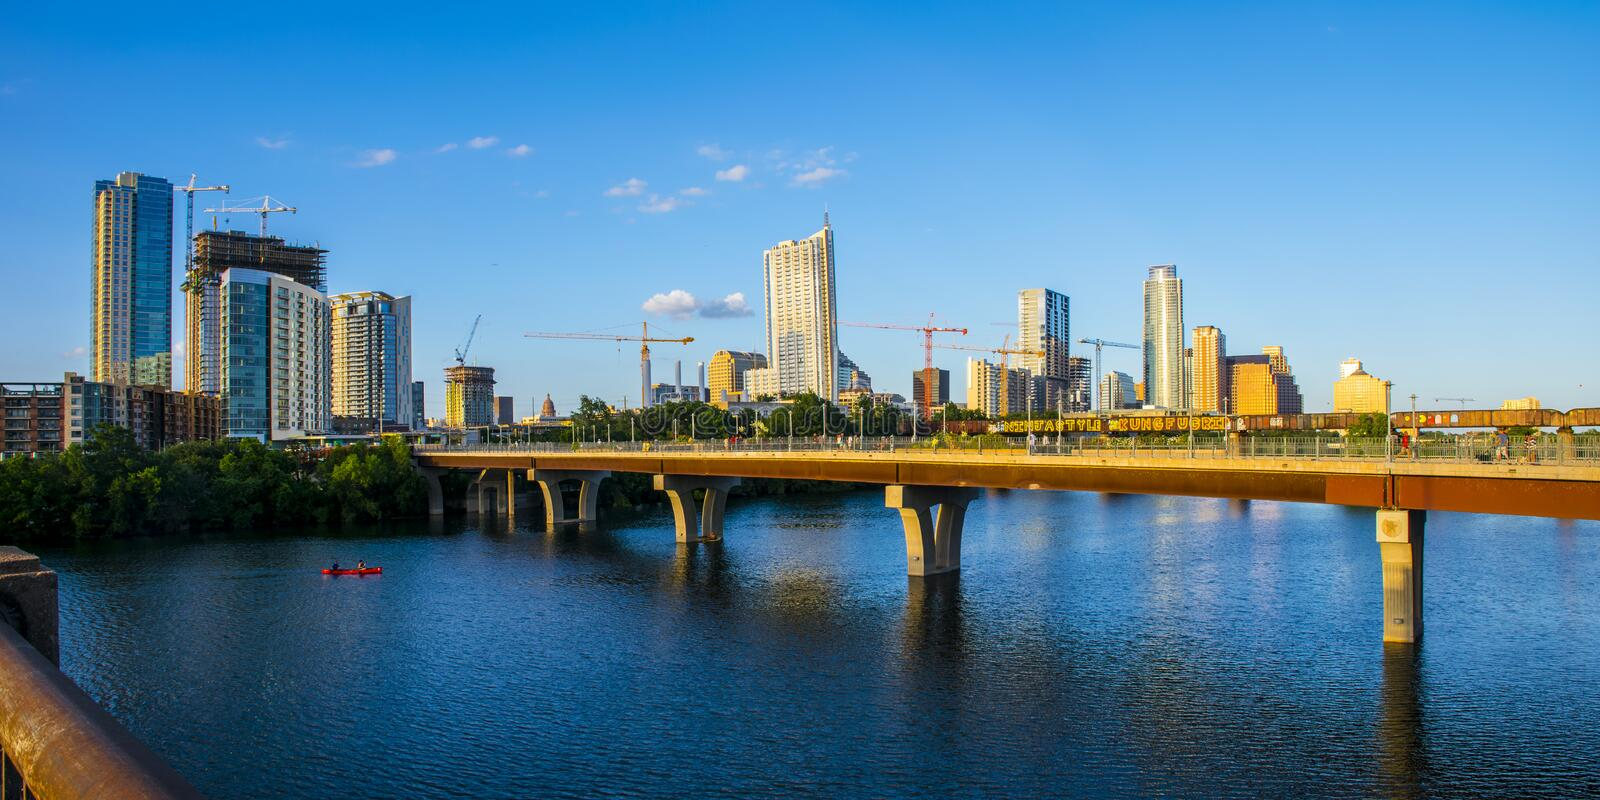 Austin Texas Growing Skyline Bridges Cranes-bouwvooruitgang stock afbeeldingen